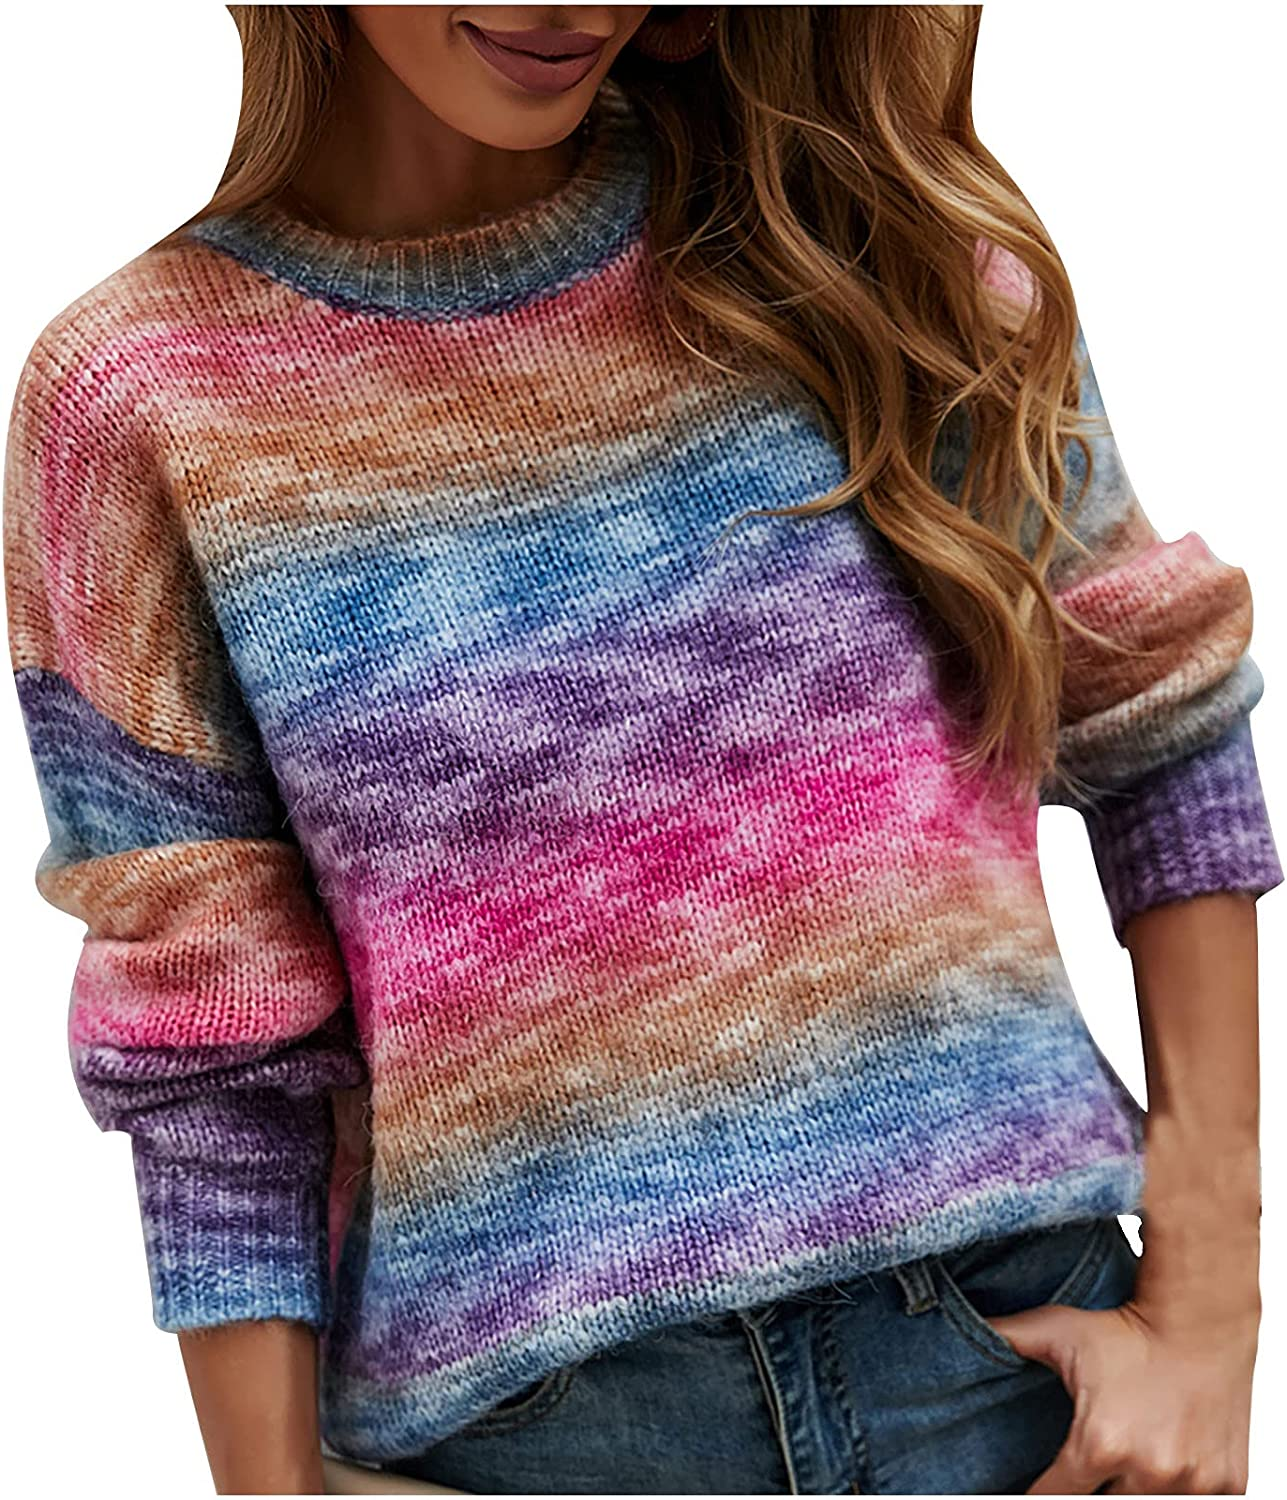 Women's Long Sleeve Sweater Tops Loose Crew Neck Striped Color Block Casual Knitted Pullover Sweatshirt Fashion Blouse